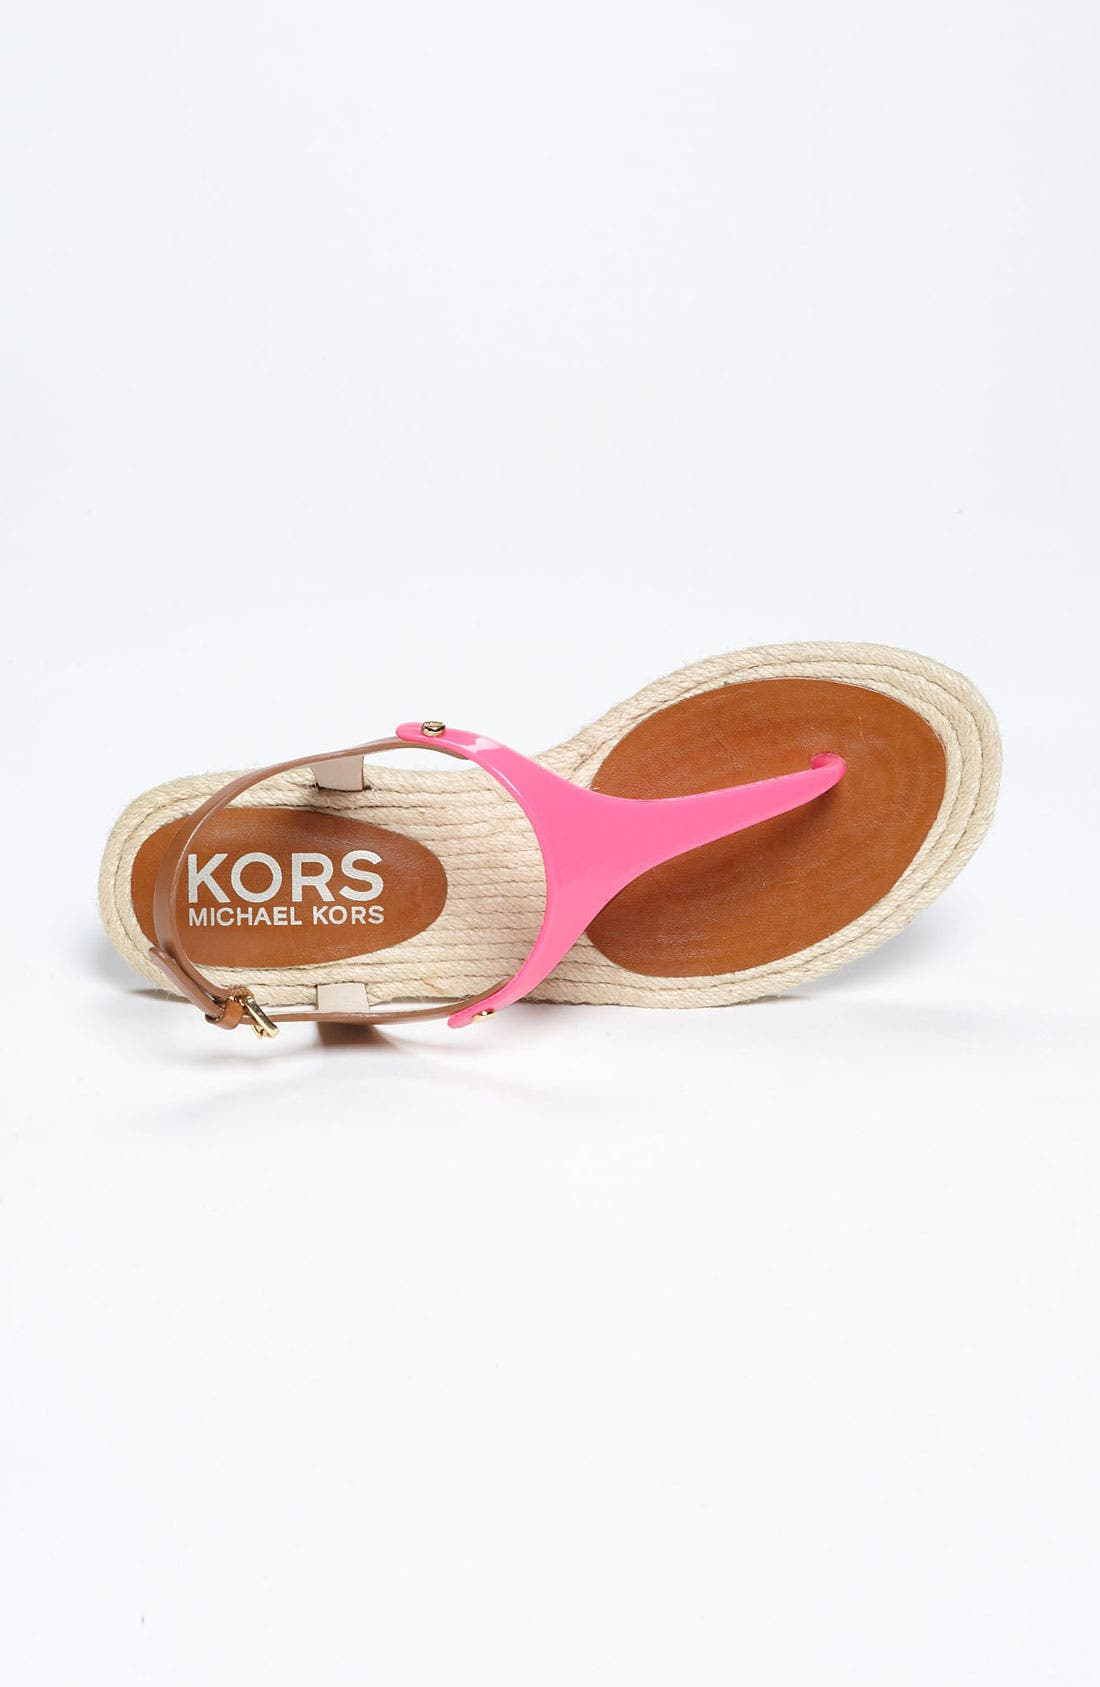 Alternate Image 3  - KORS Michael Kors 'Stephy' Sandal